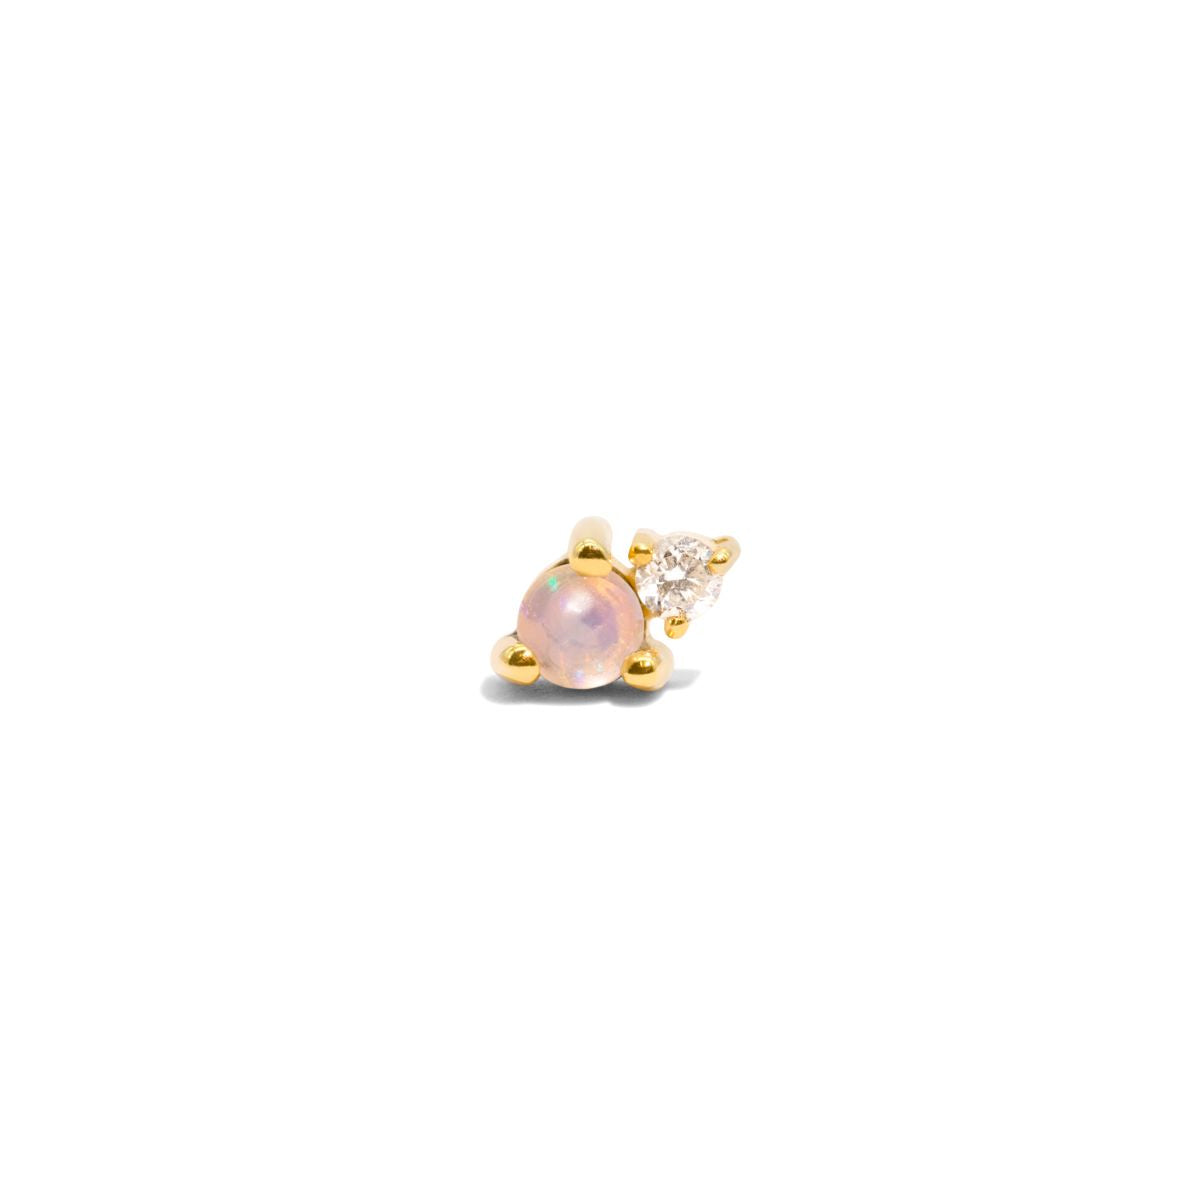 The Single Gold Opal & Diamond Duo Stud Earring